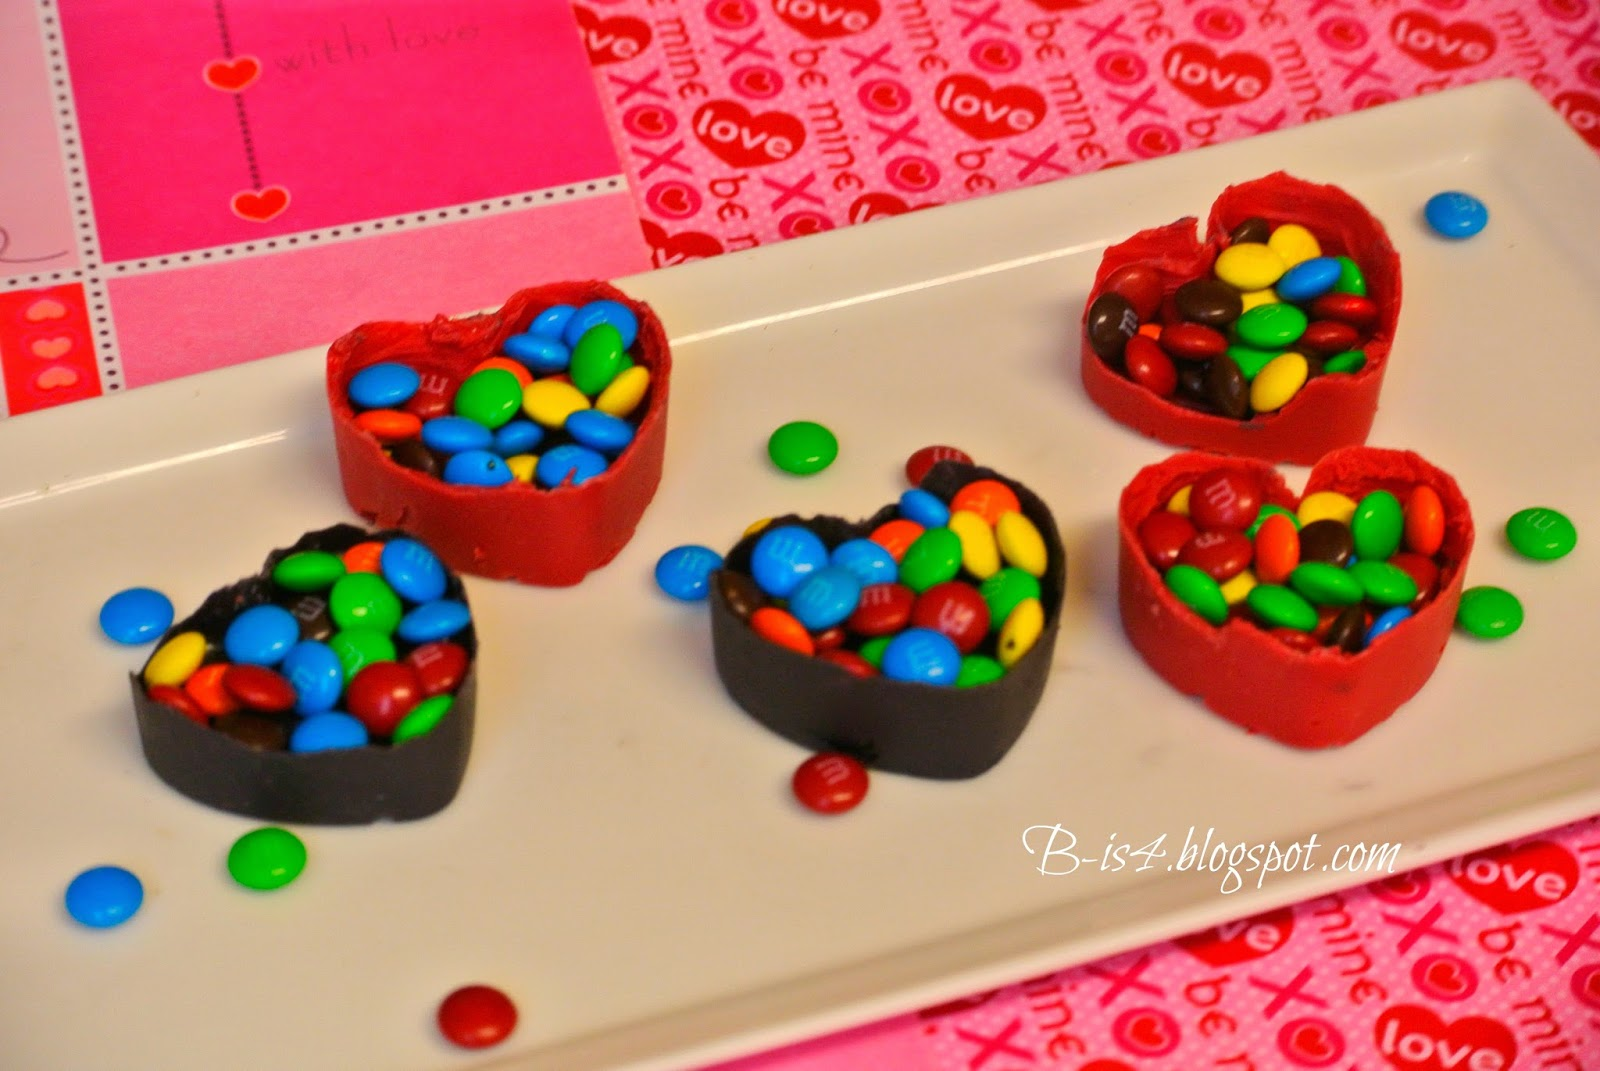 Chocolate, M&M's, Hearts